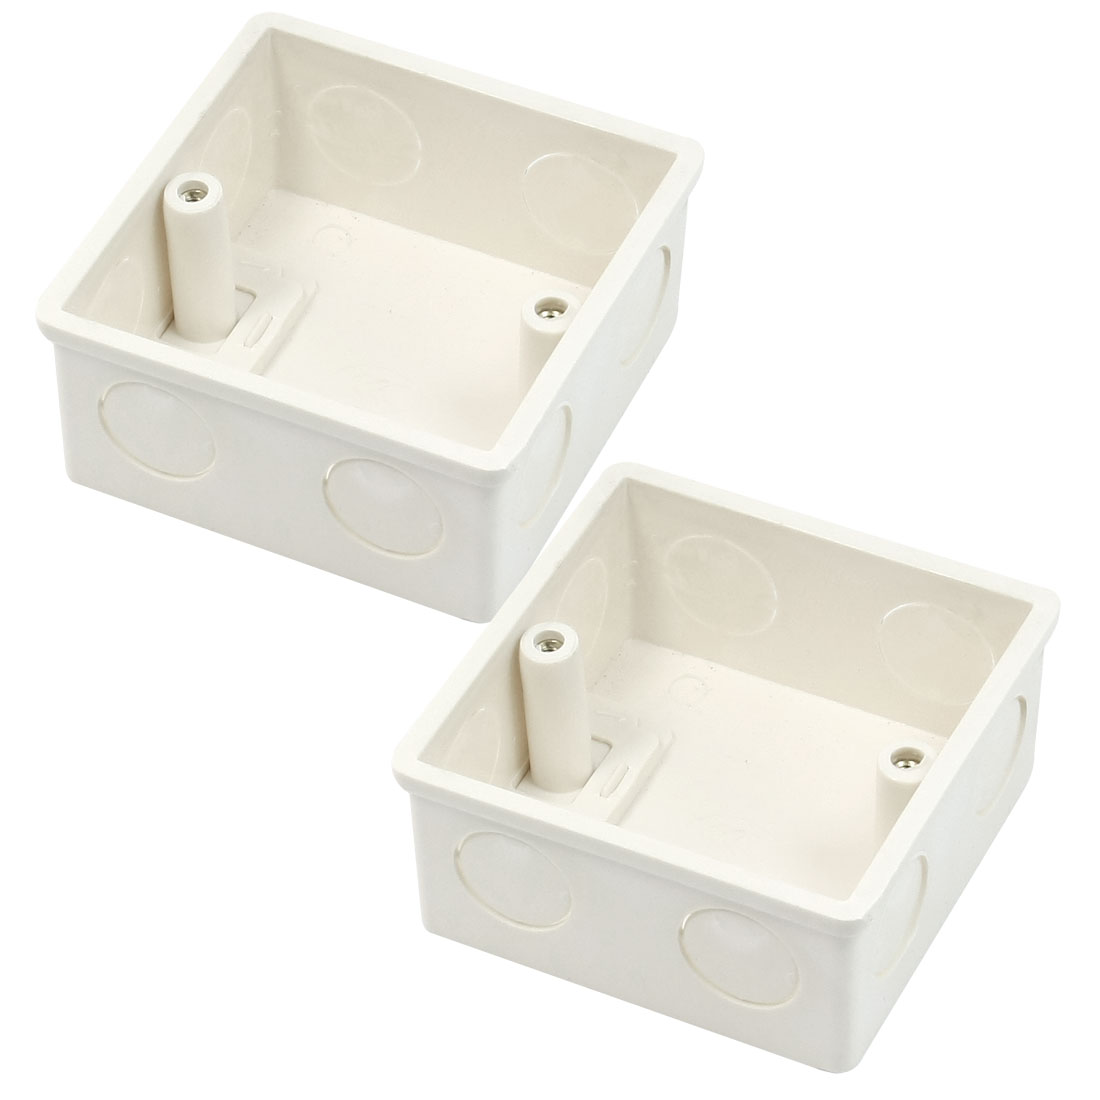 2 Pcs 78x78x37mm White PVC Flush-Type Wall Mounted Single Gang Junction Box